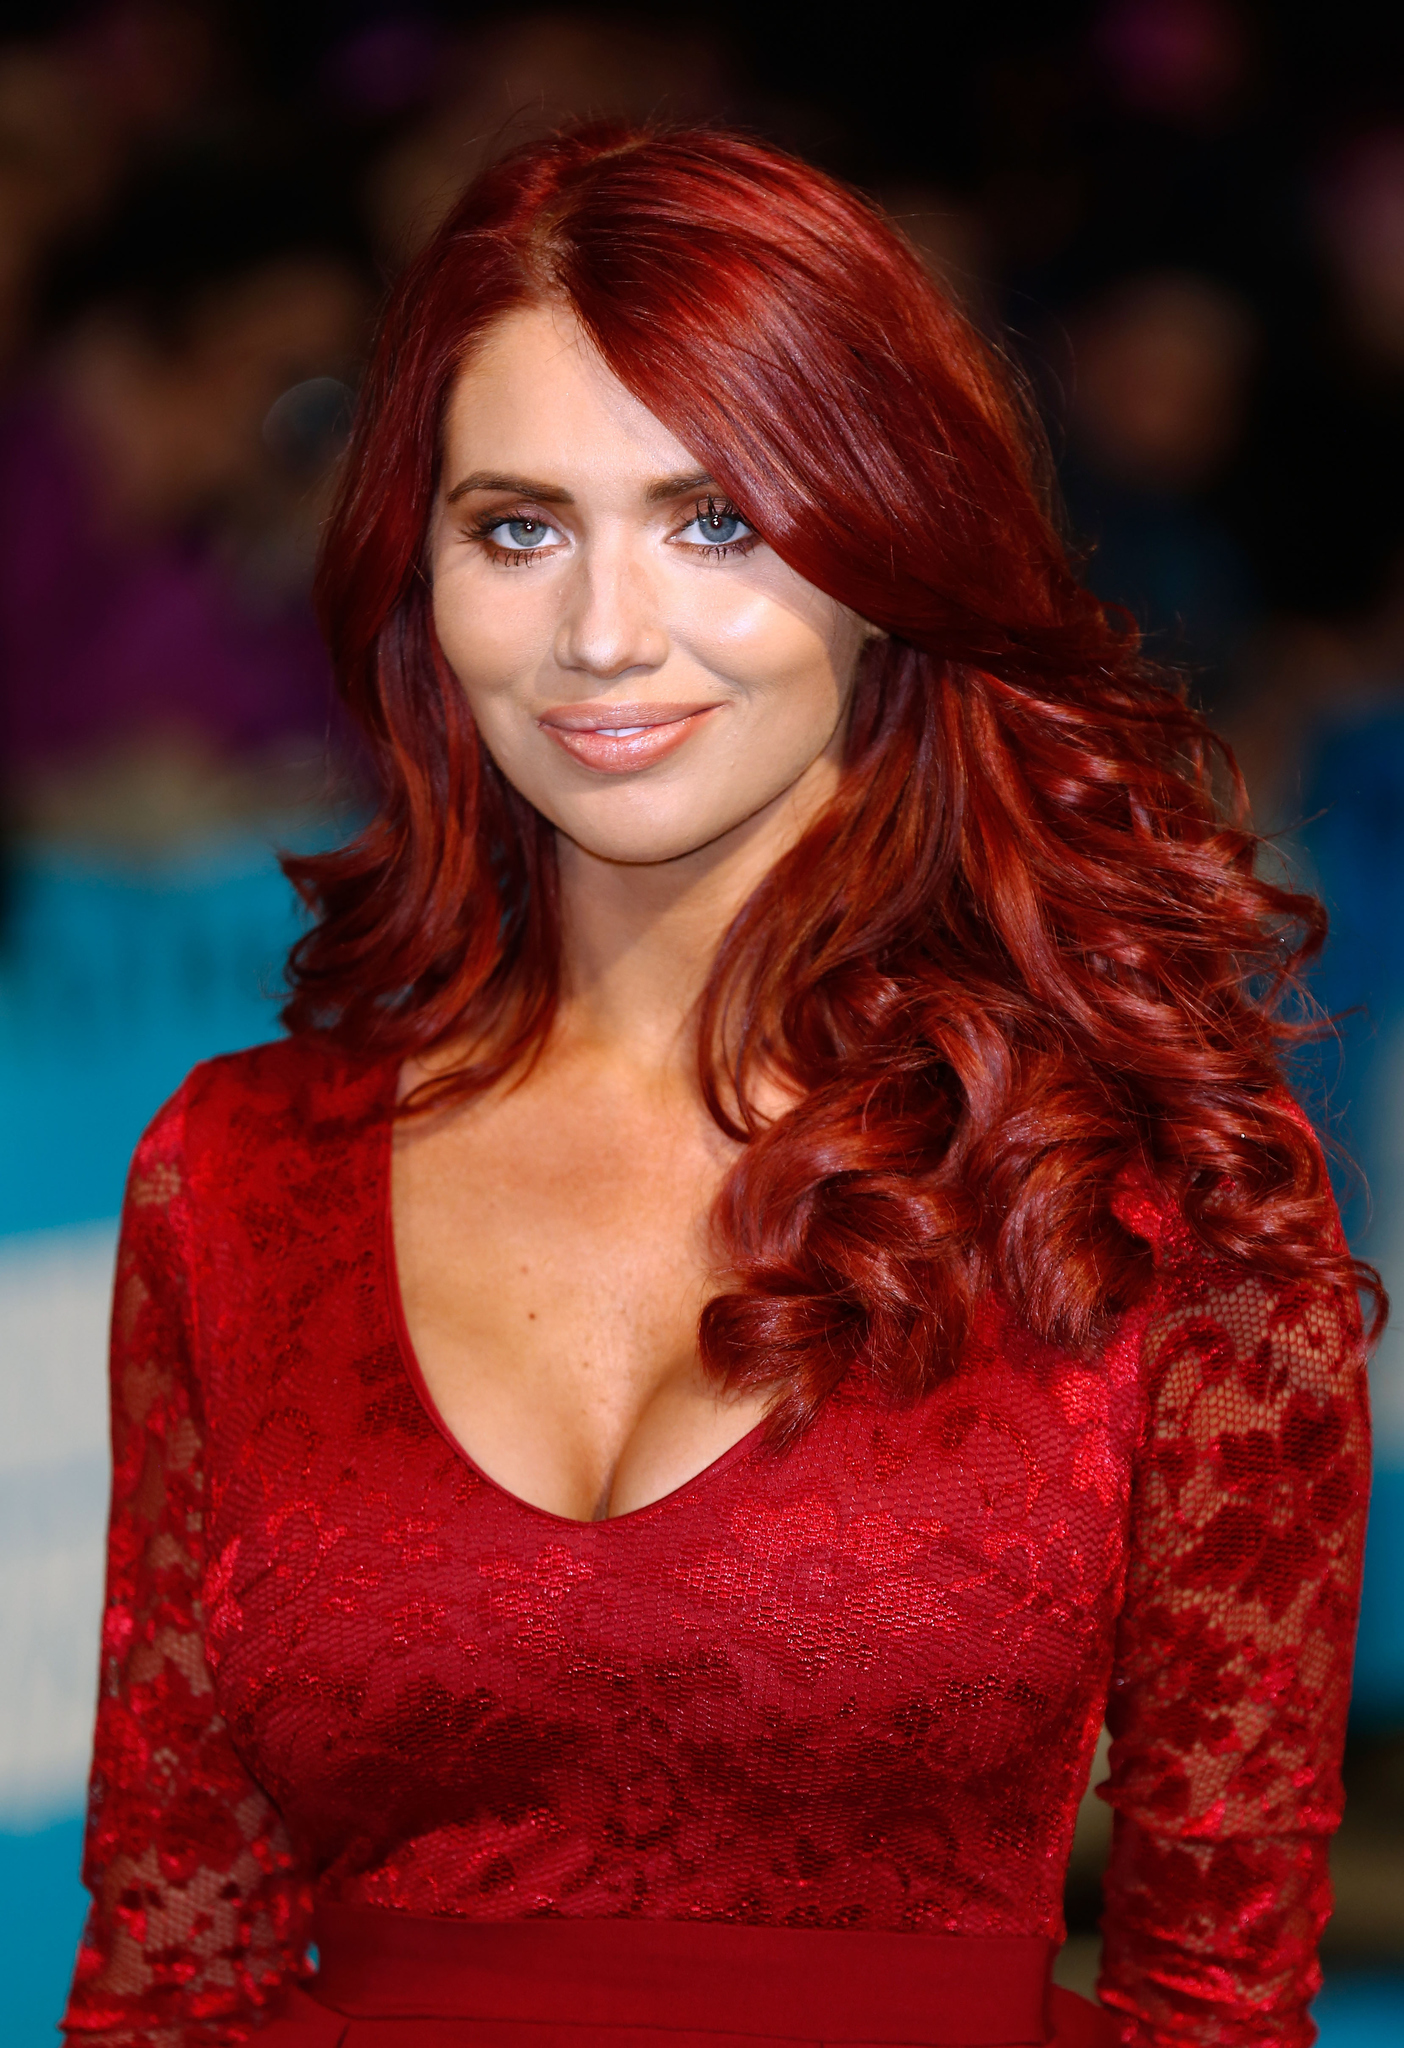 Fotos Amy Childs nudes (77 photos), Pussy, Paparazzi, Boobs, underwear 2020